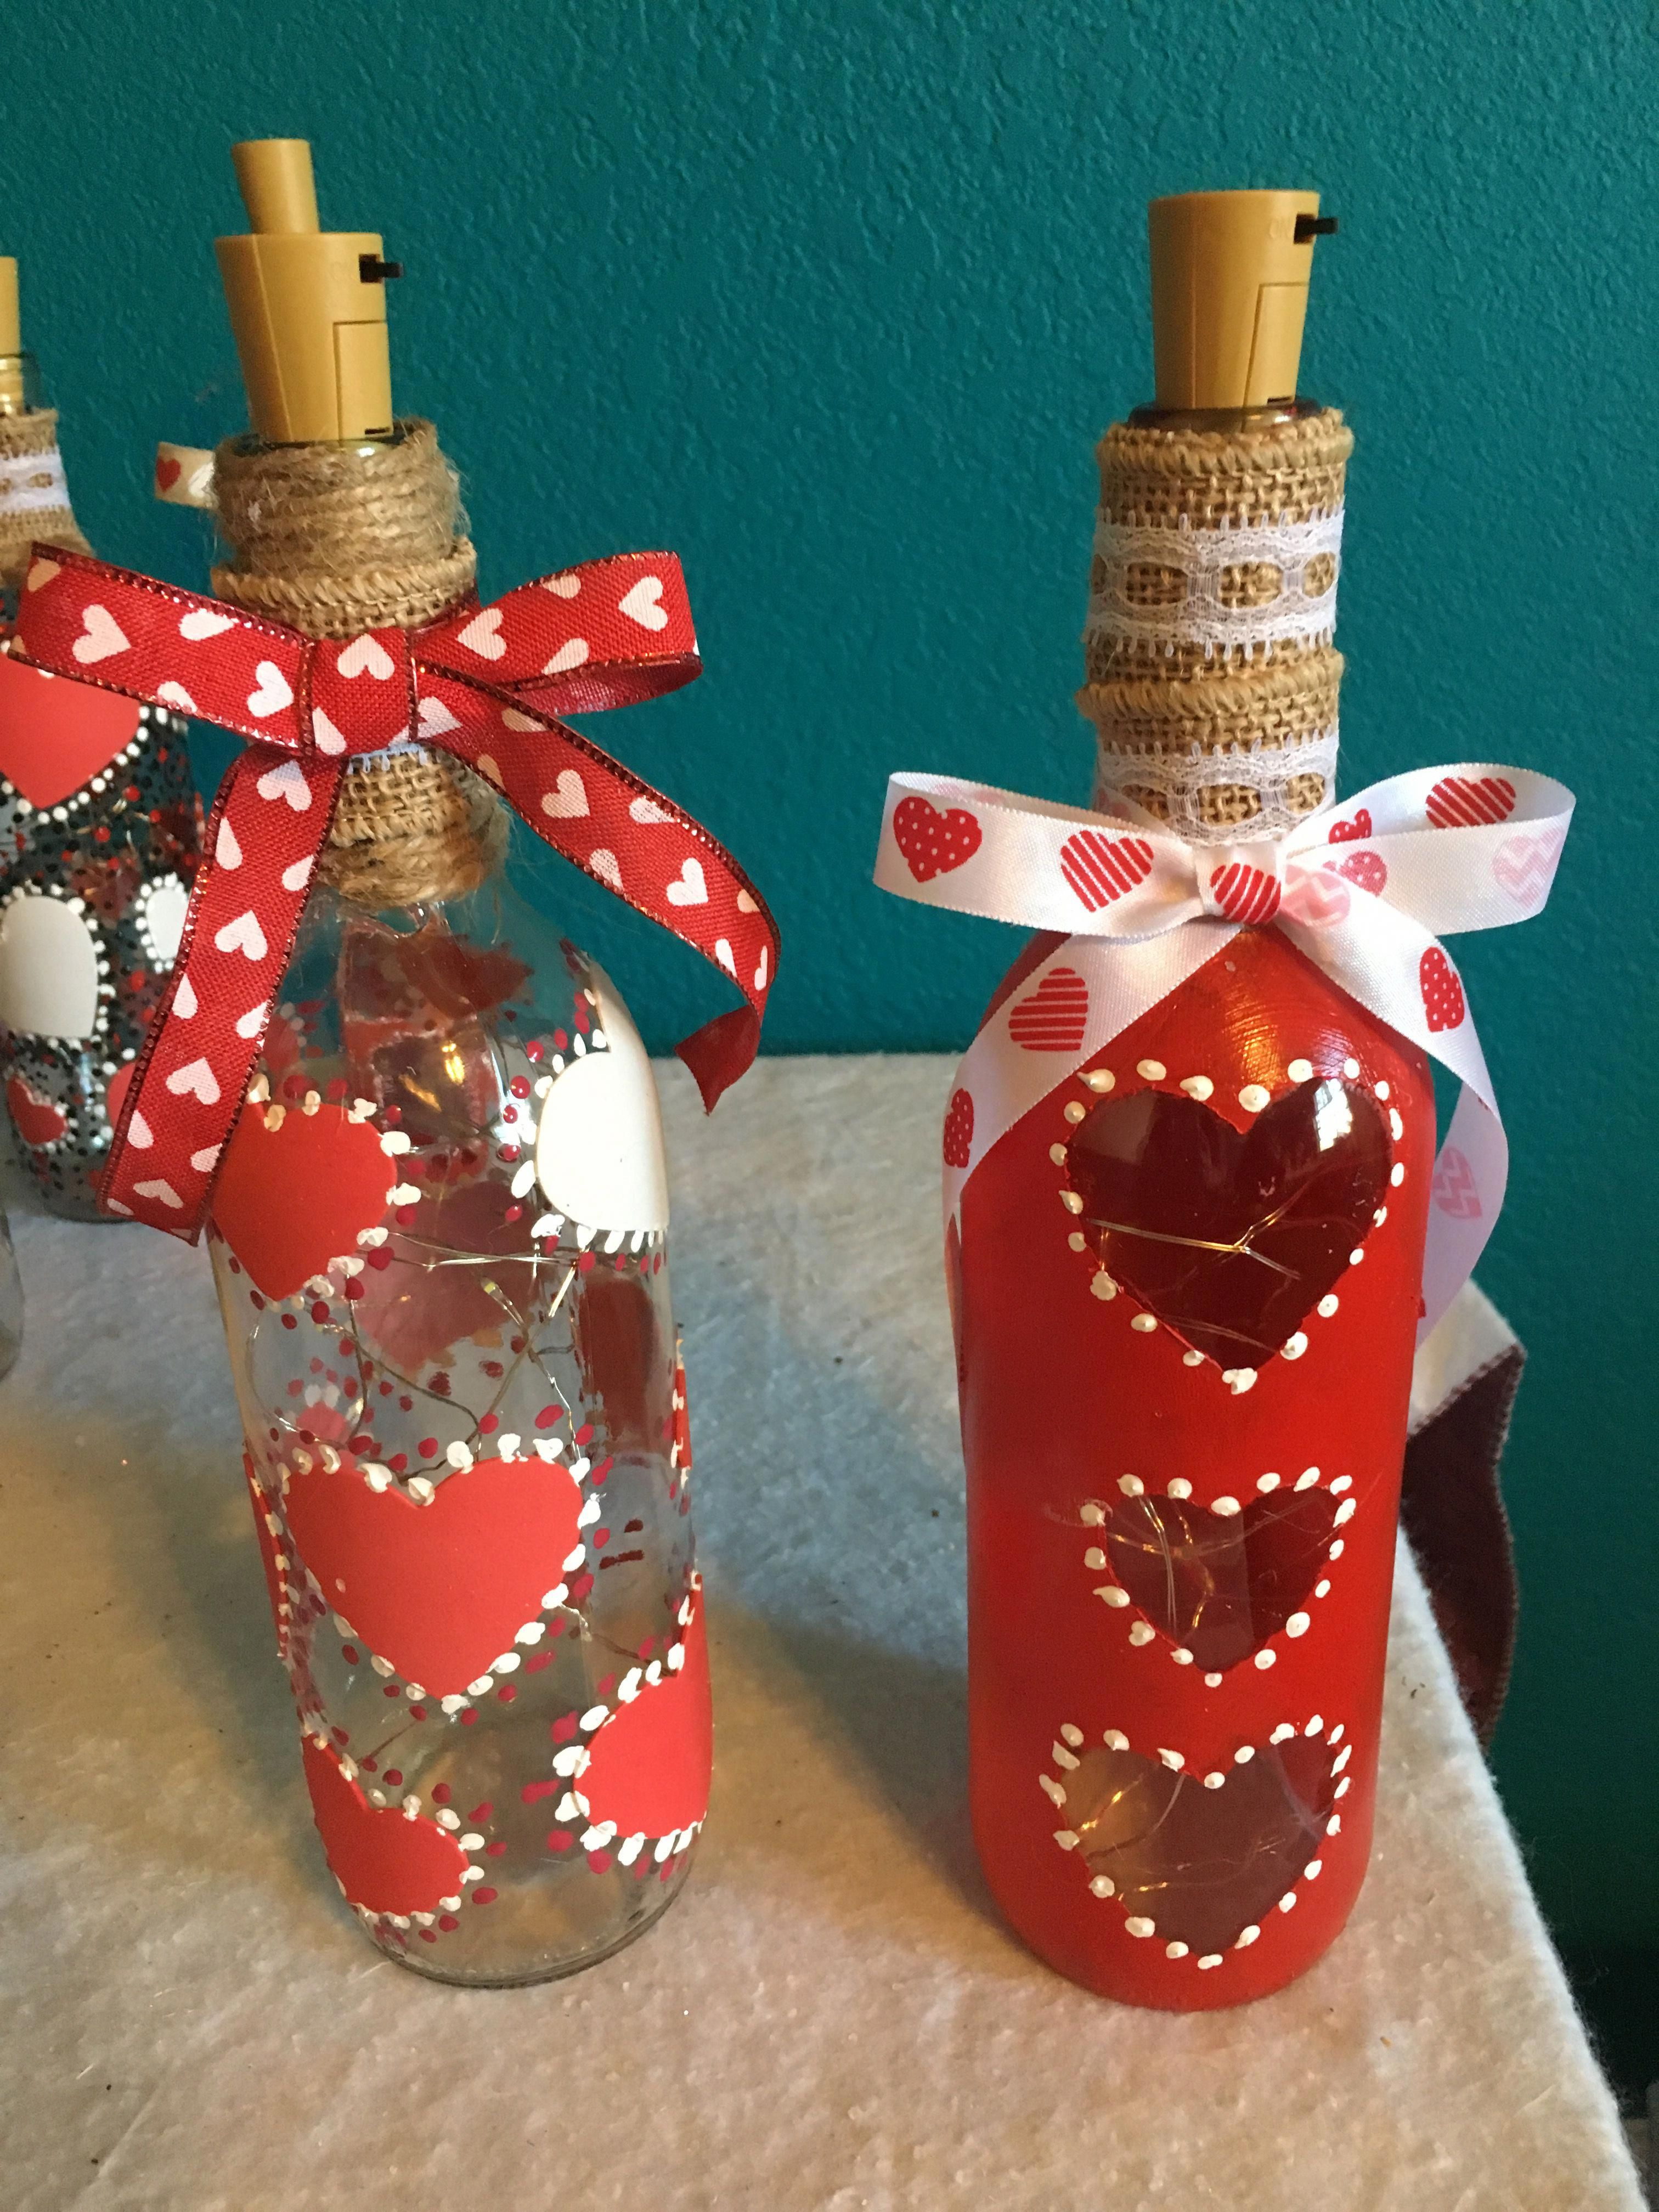 Attempting To Find Wine Box Designs This Round Out Has You Covered From Home Made Spectacles To R Valentines Wine Bottle Crafts Valentines Wine Bottle Crafts